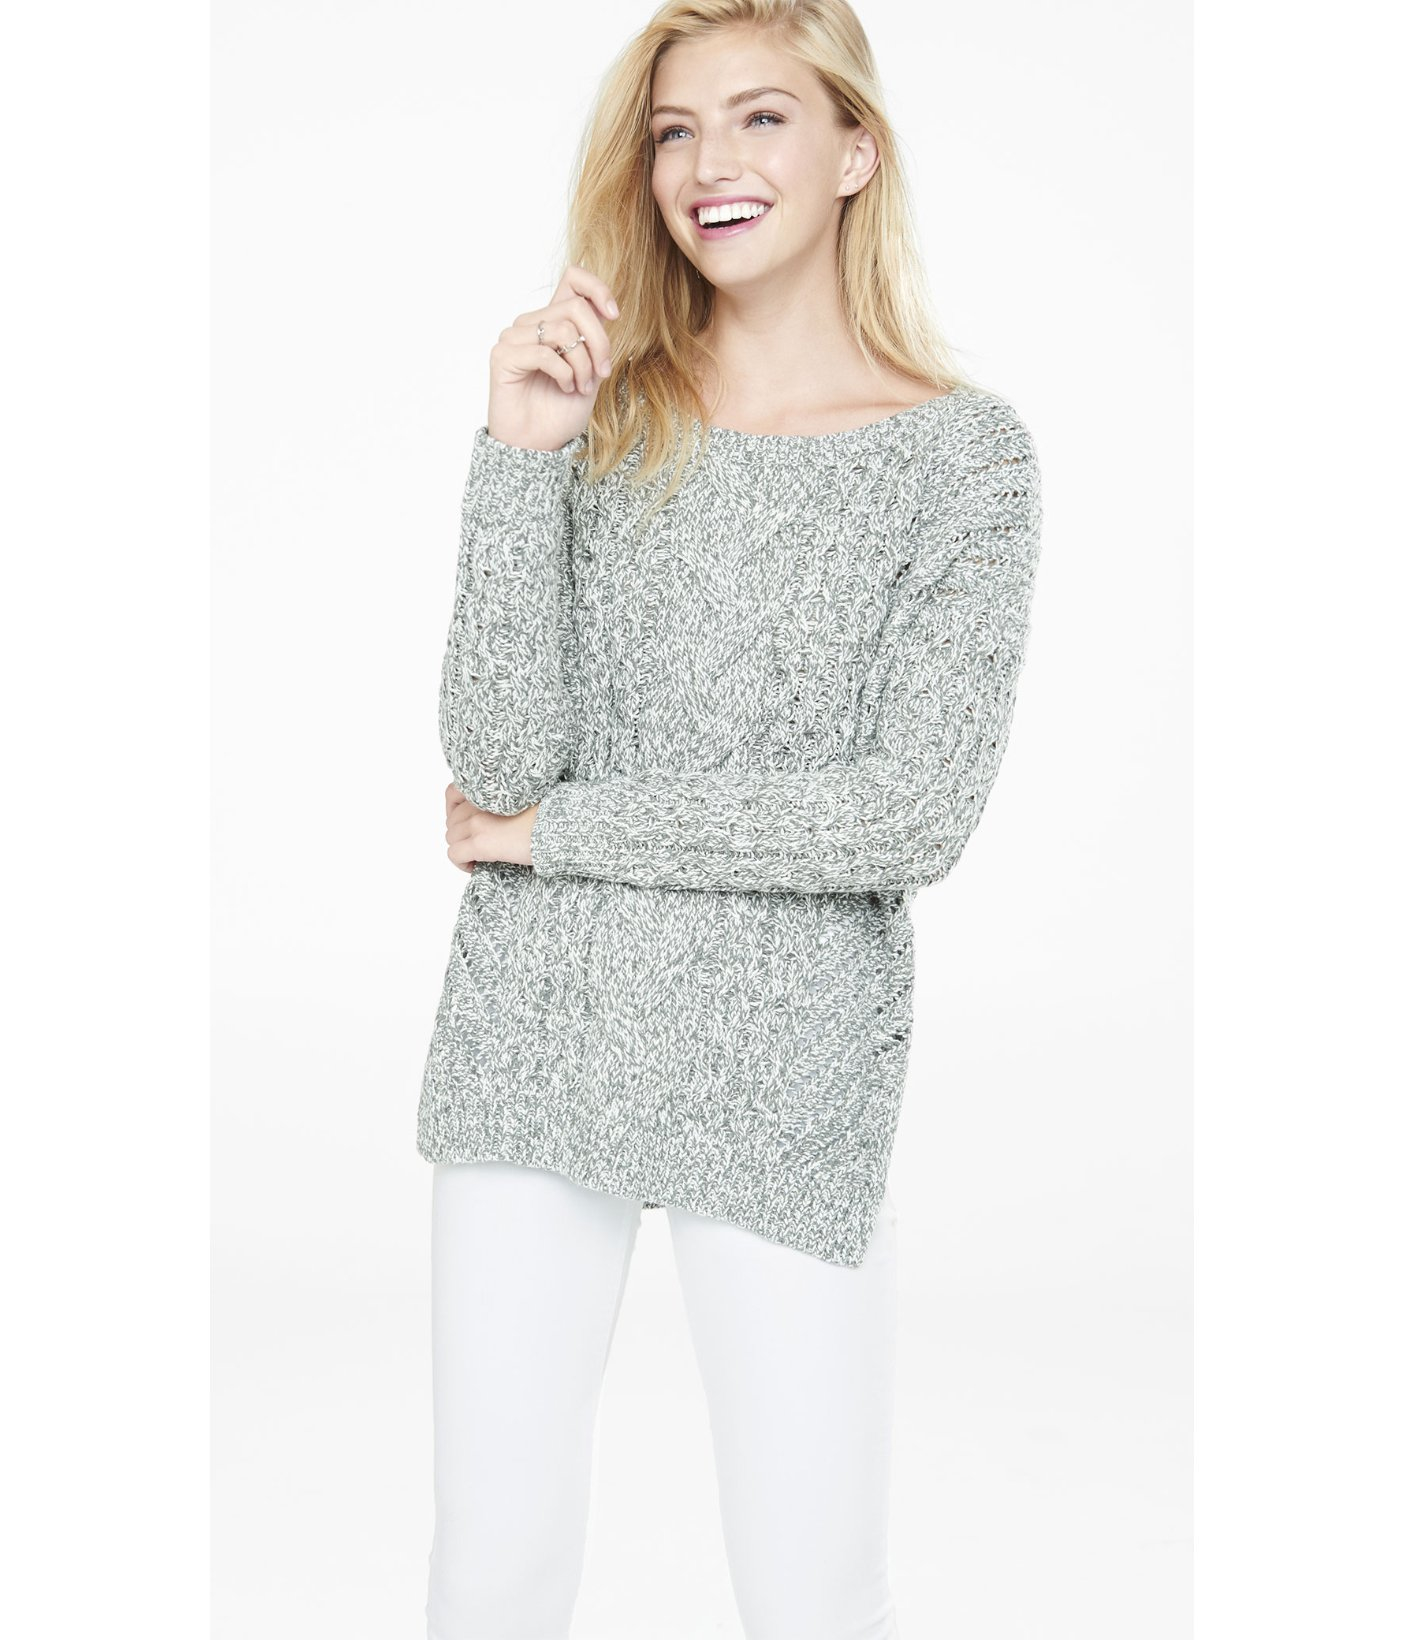 Express Marl Oversized Open Cable Knit Tunic Sweater in Gray | Lyst